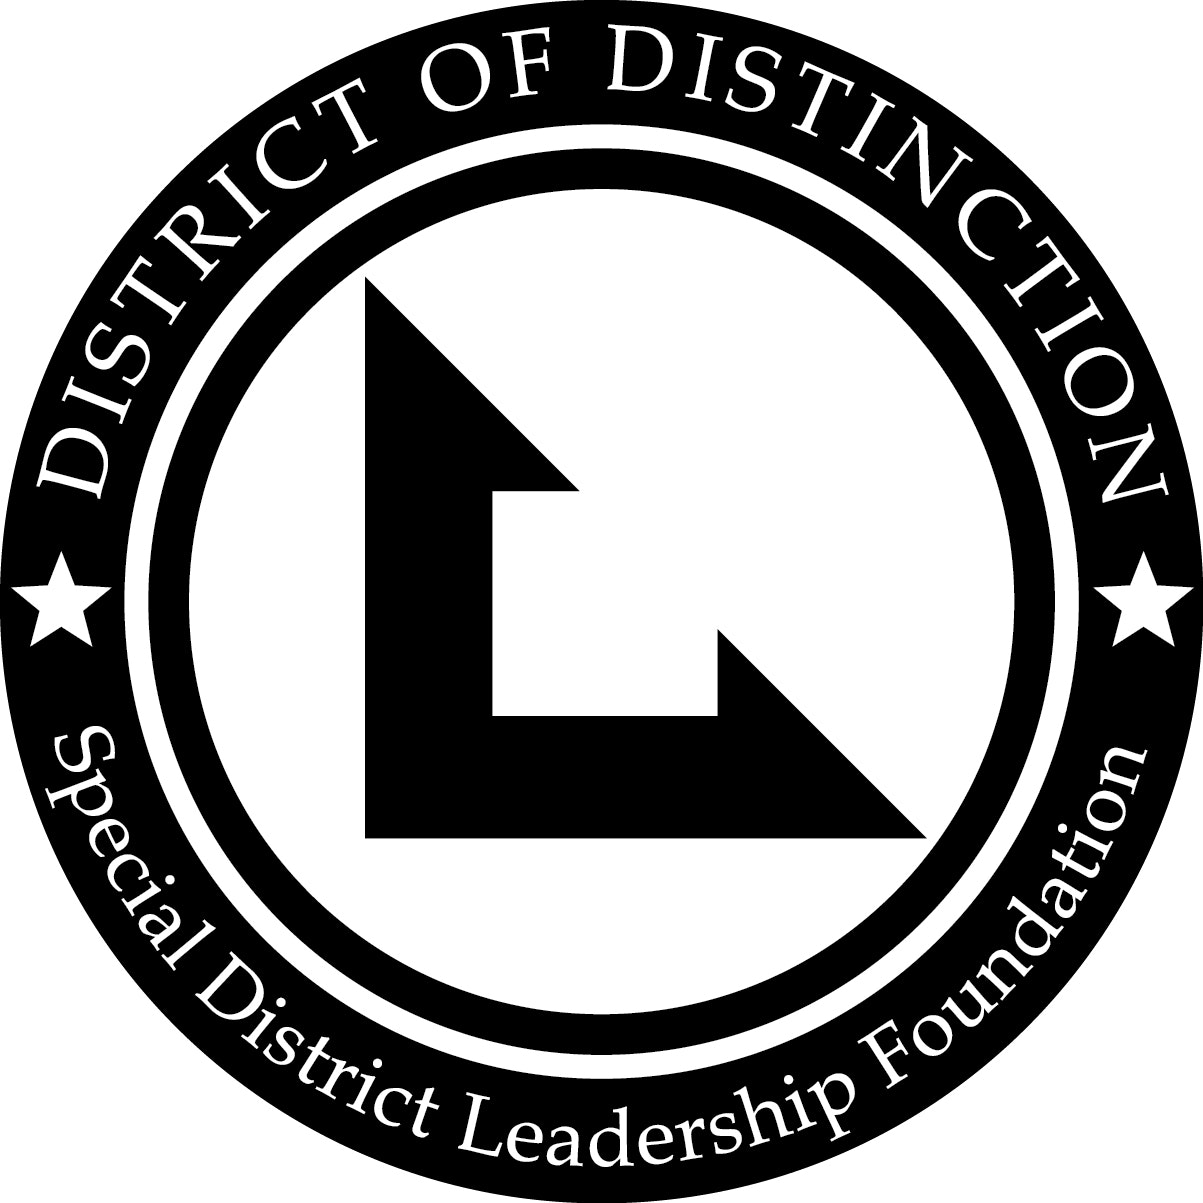 CSDA District of Distinction Logo